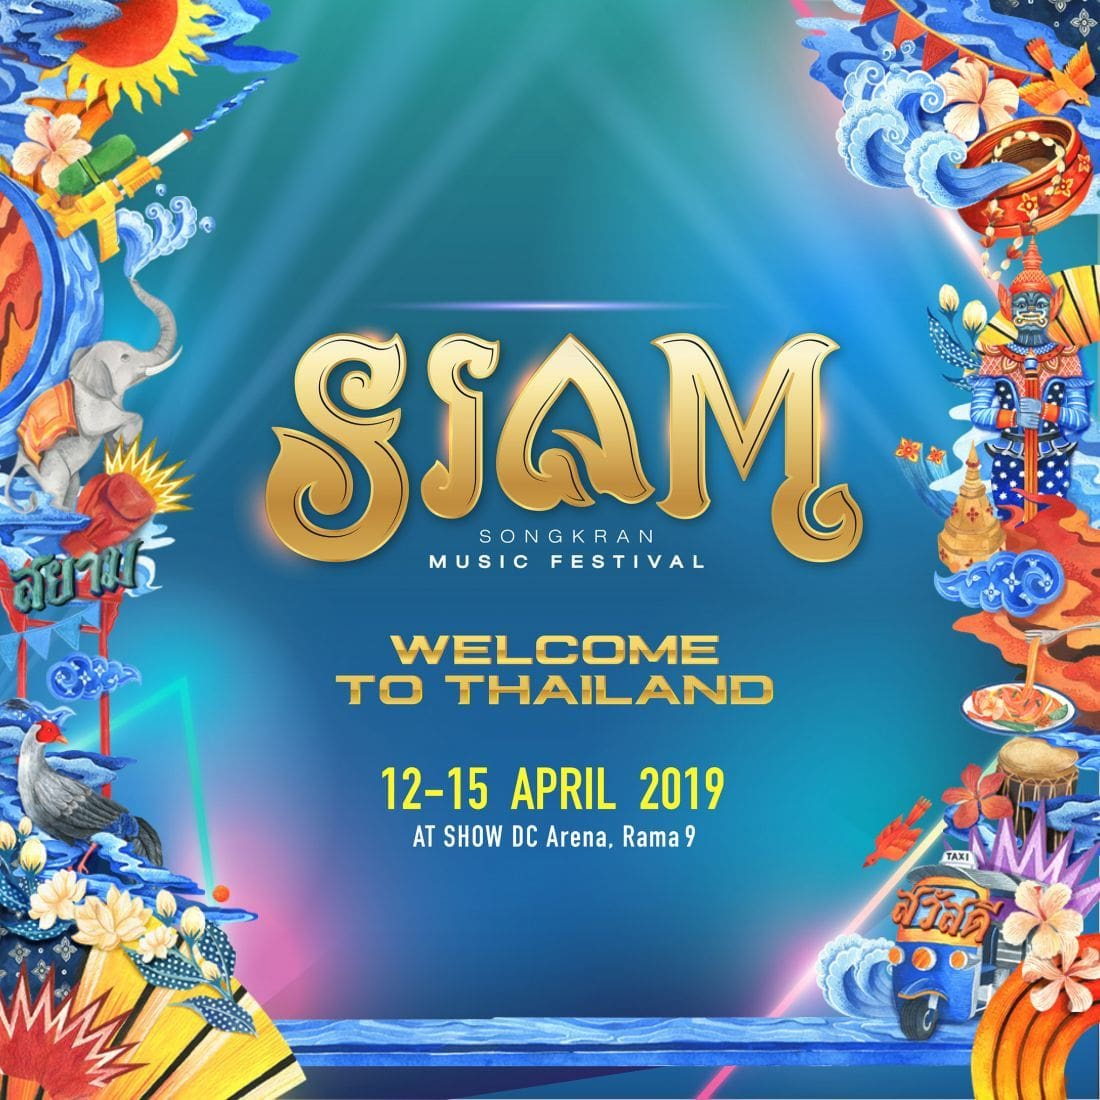 Siam Songkran Festival lights up this year's Songkran in Bangkok | News by The Thaiger